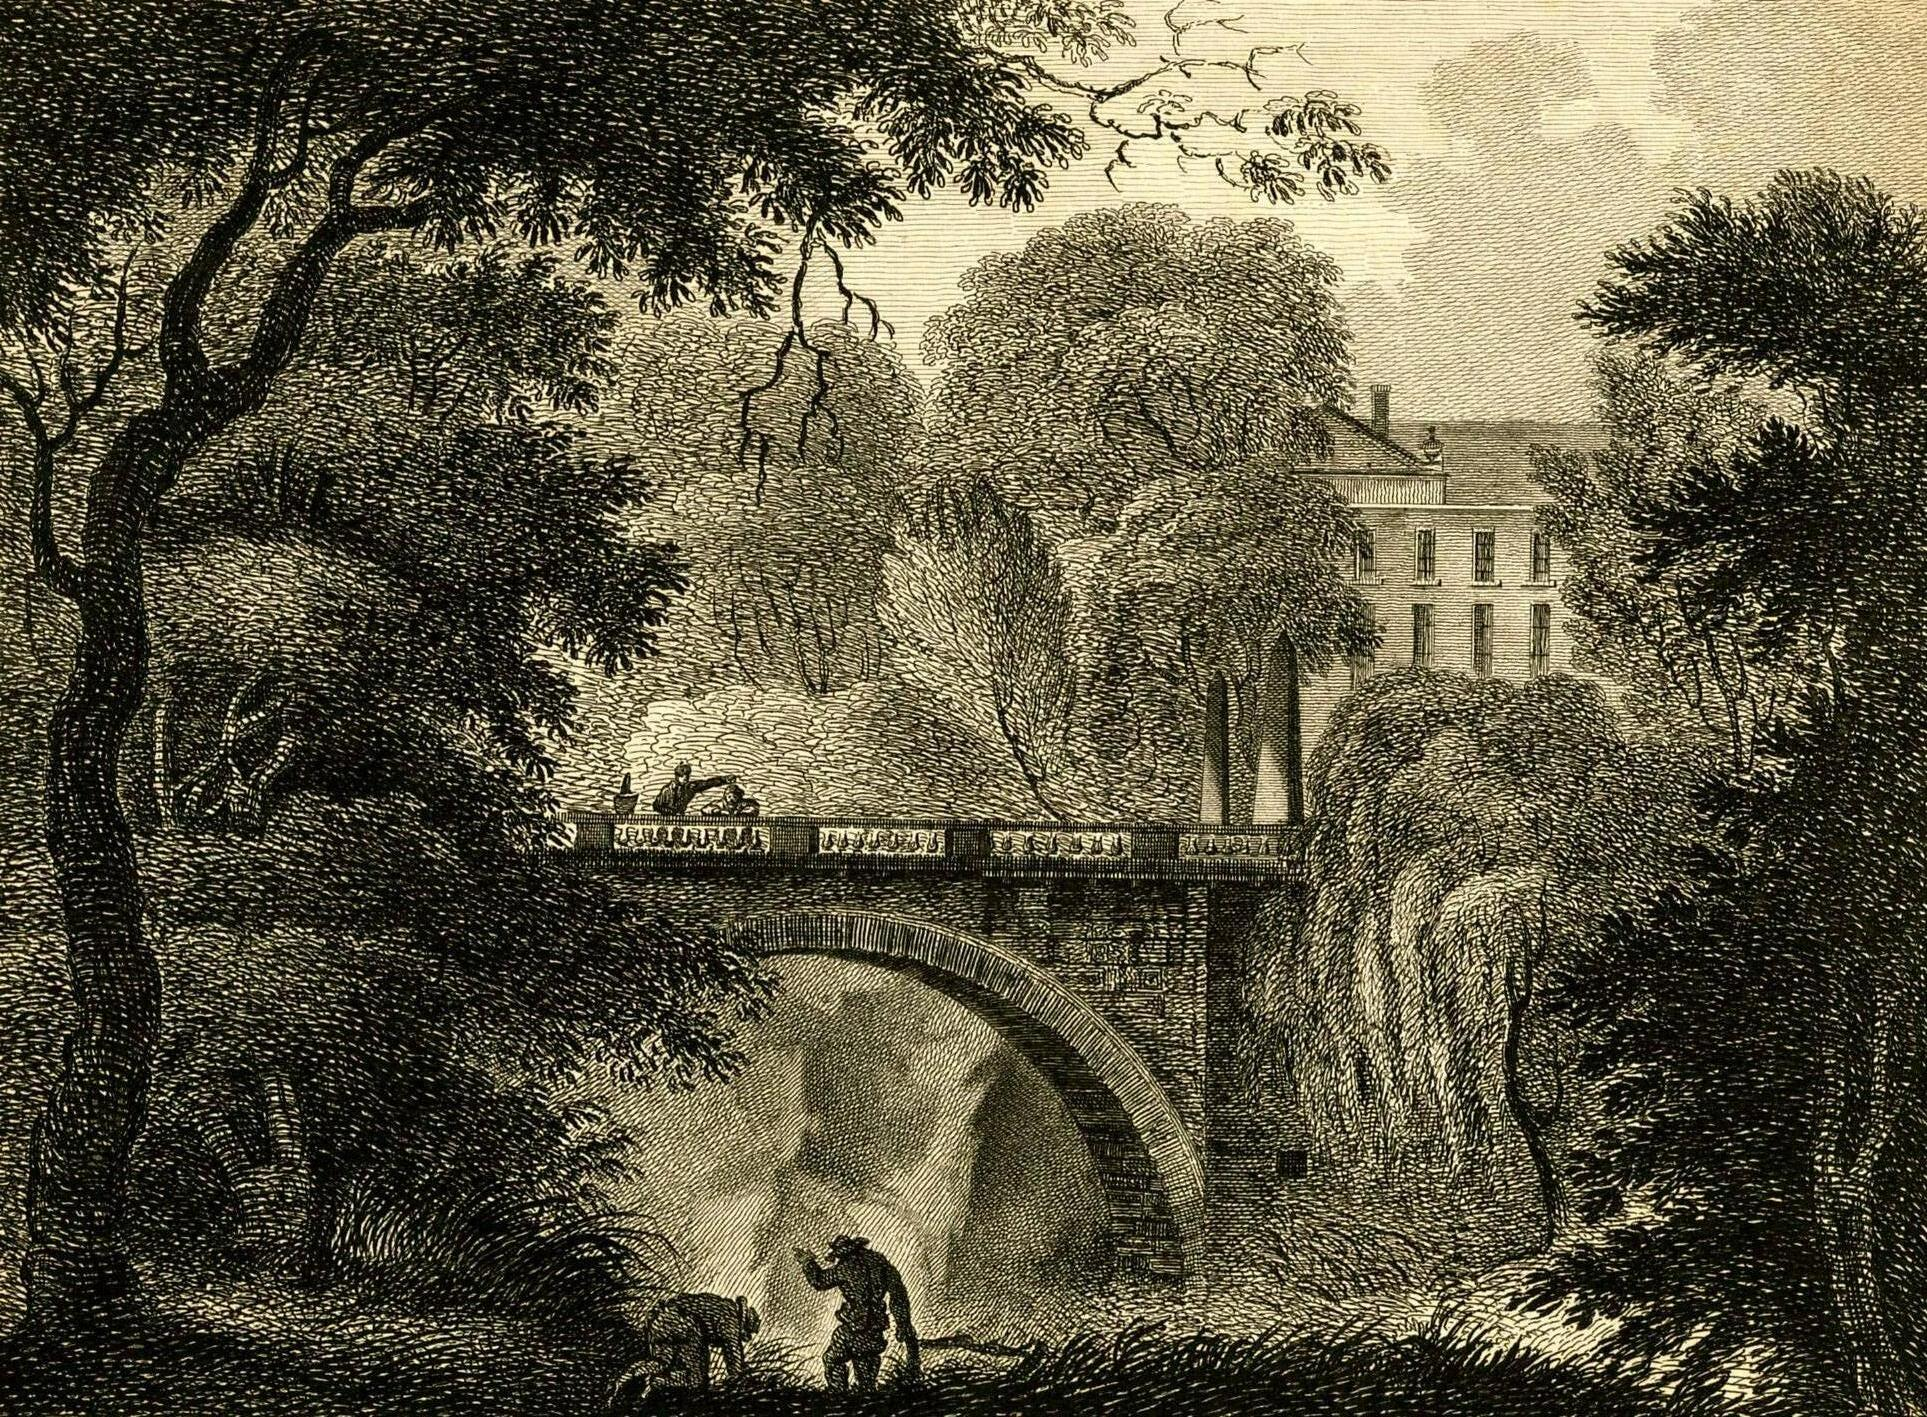 Barskimming House and Bridge